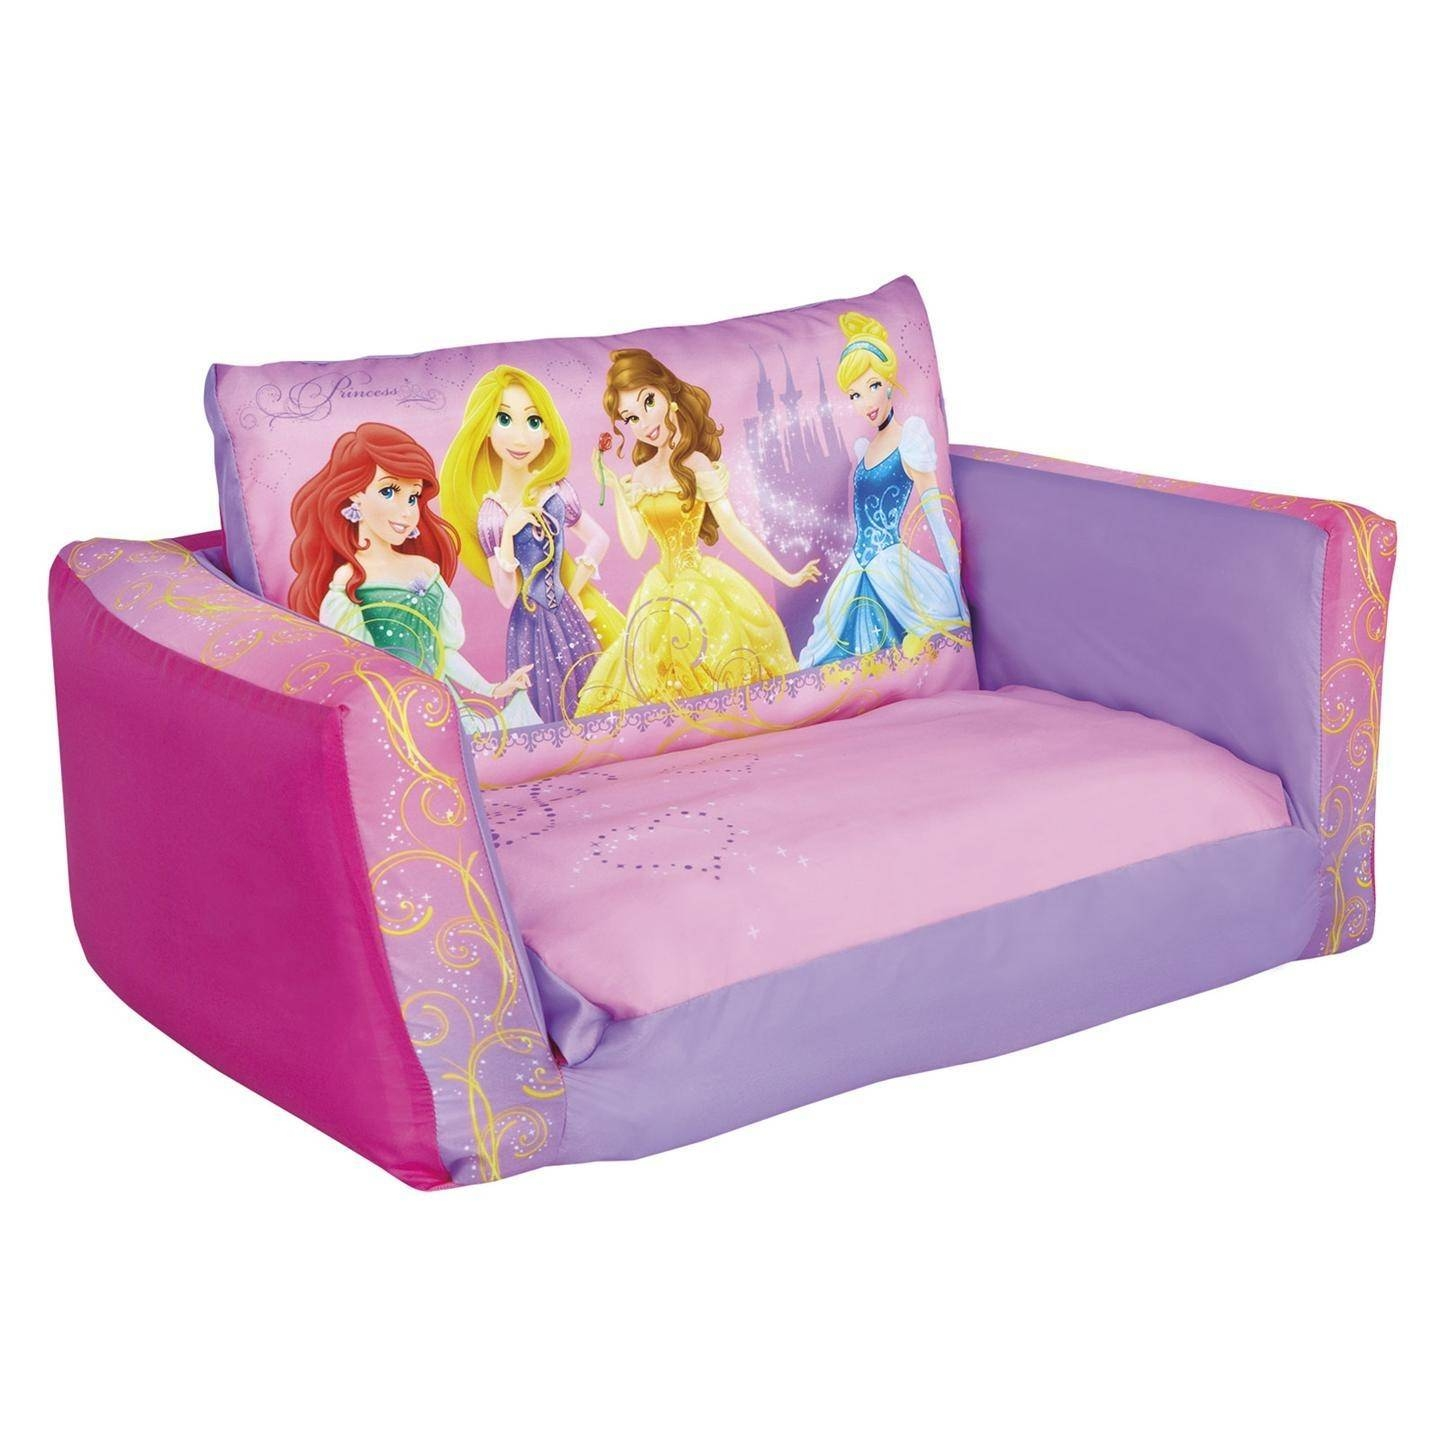 20+ Choices Of Disney Princess Sofas | Sofa Ideas In Disney Sofas (Photo 9 of 15)